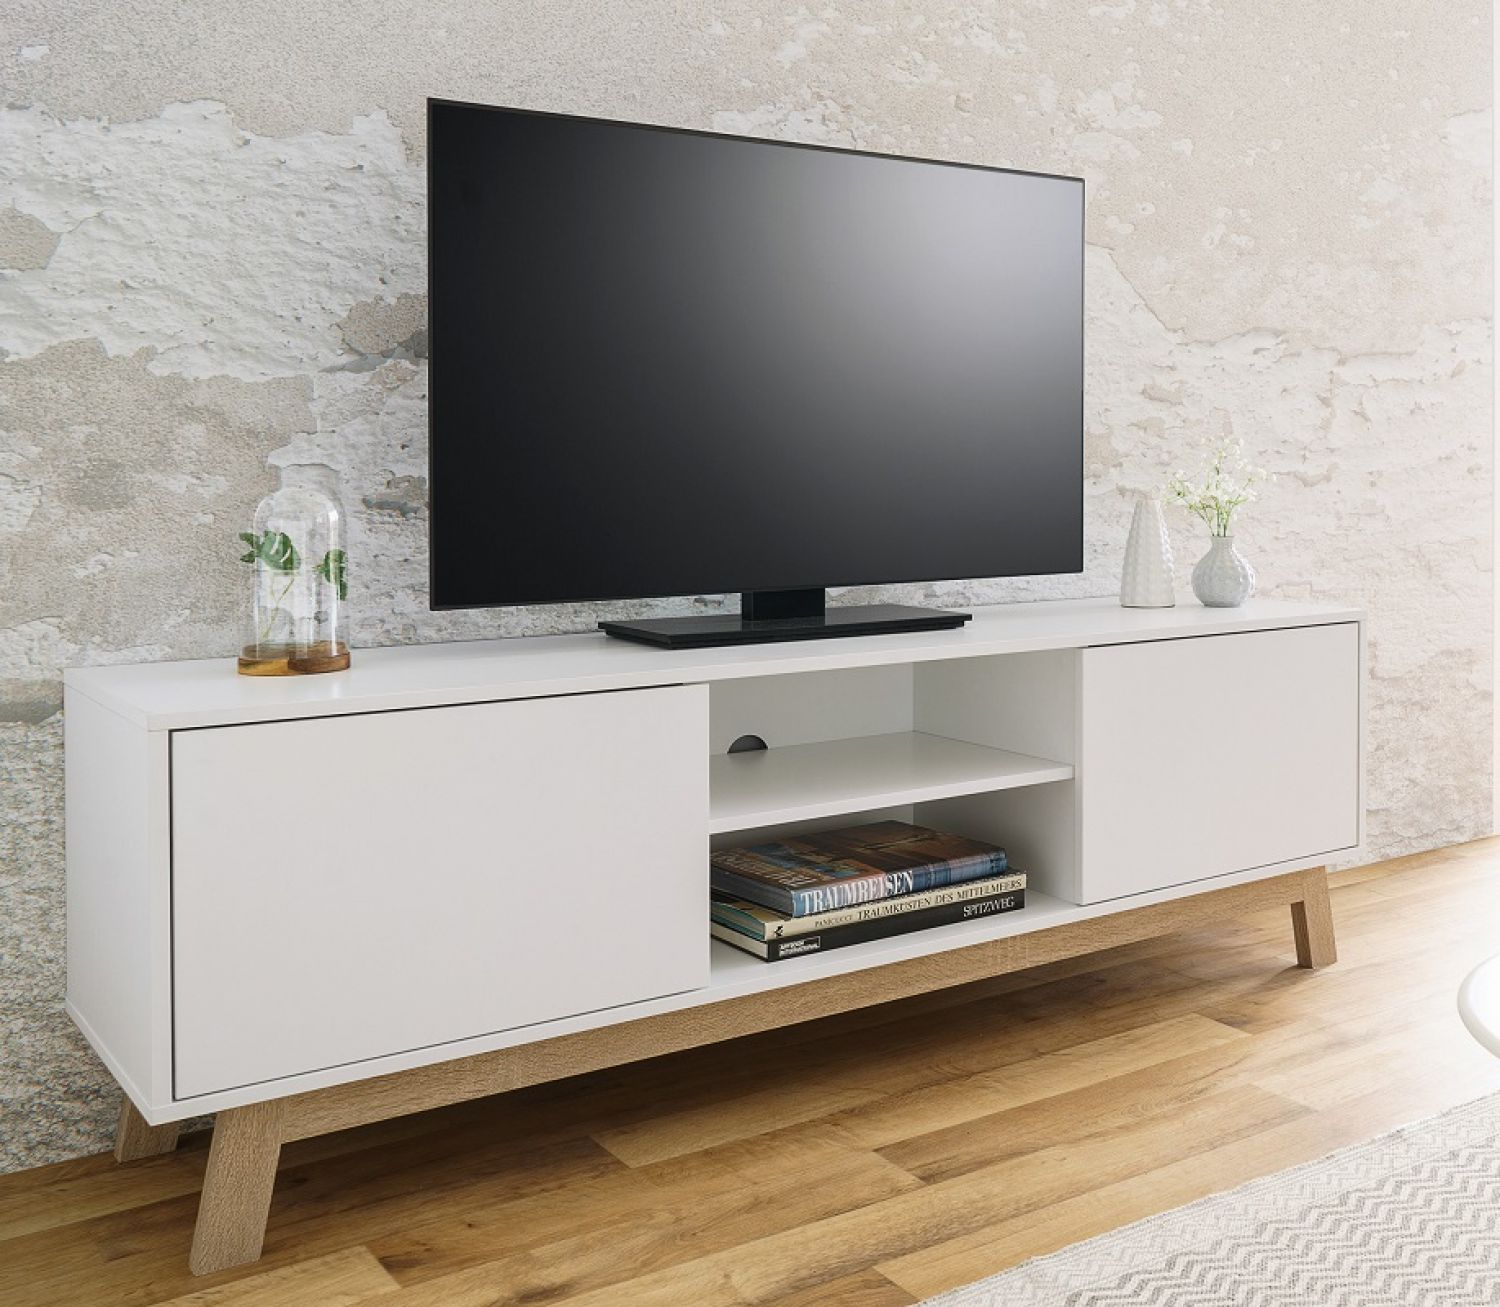 tv schrank lowboard skandinavisch tv board fernsehschrank wei neu ebay. Black Bedroom Furniture Sets. Home Design Ideas